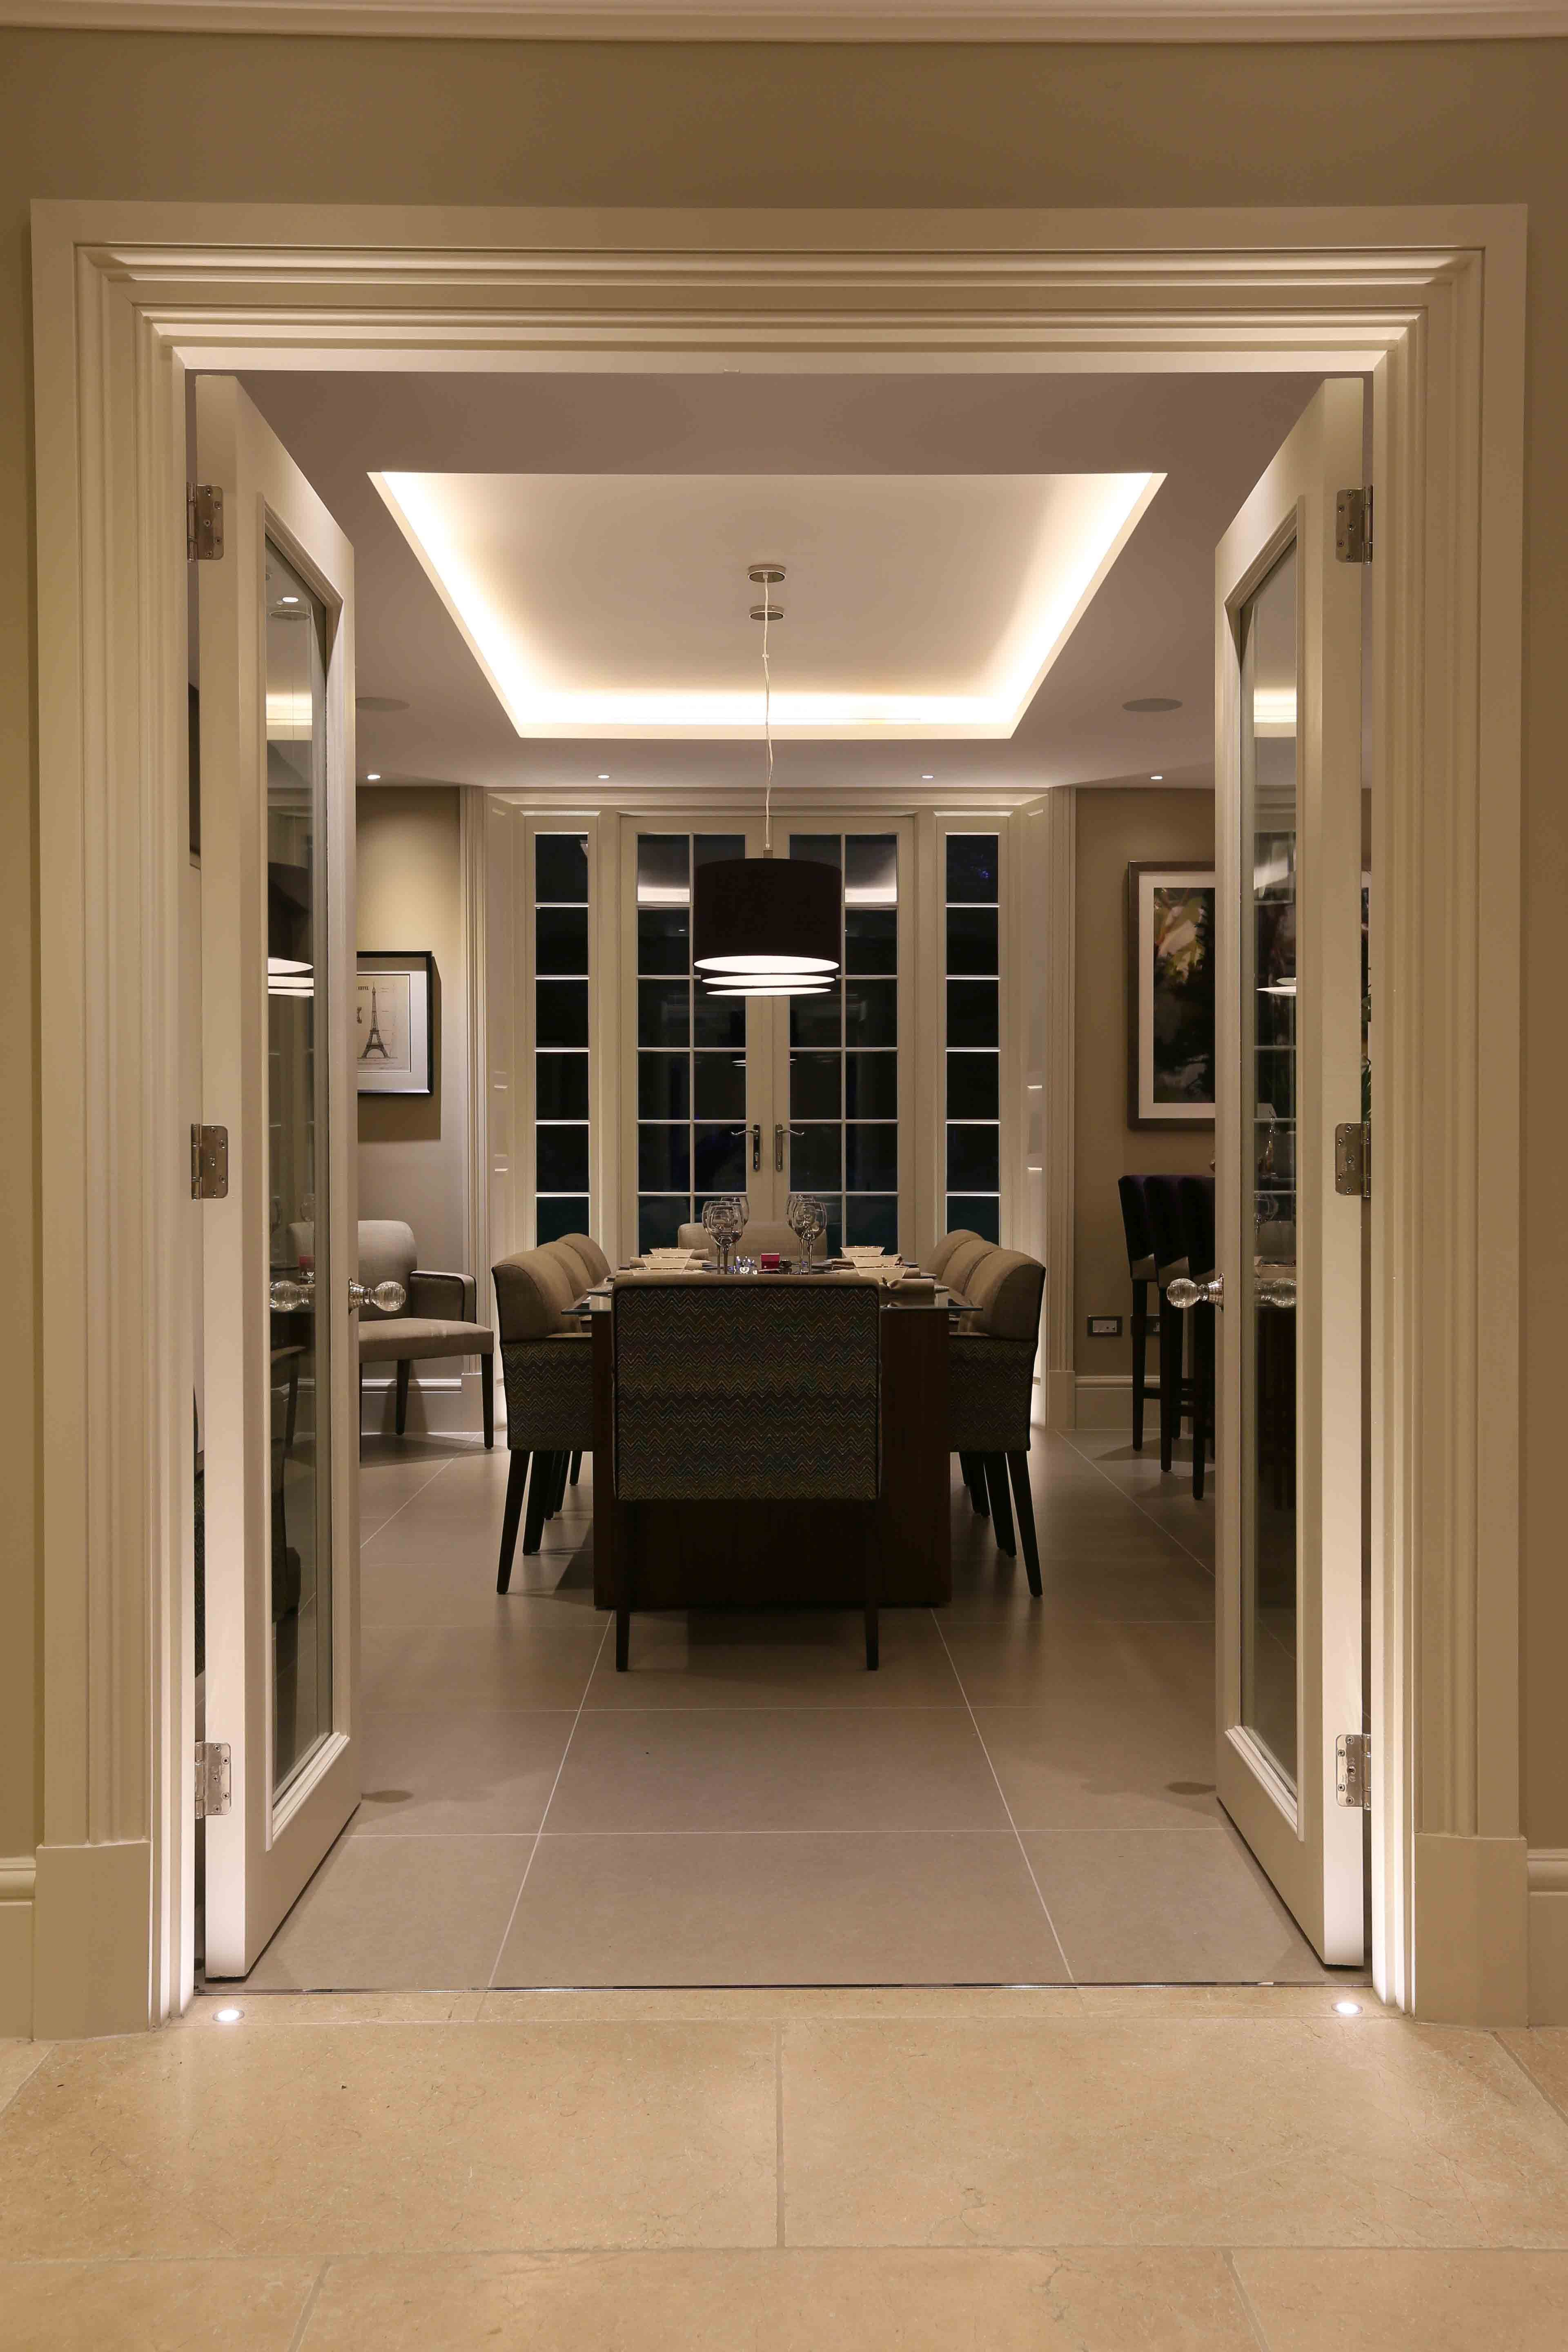 decorationastounding staircase lighting design ideas. Impress Your Guests With Stunning Dining Room Lighting. See A Range Of Lighting Ideas Along Products To Get The Look. Decorationastounding Staircase Design G